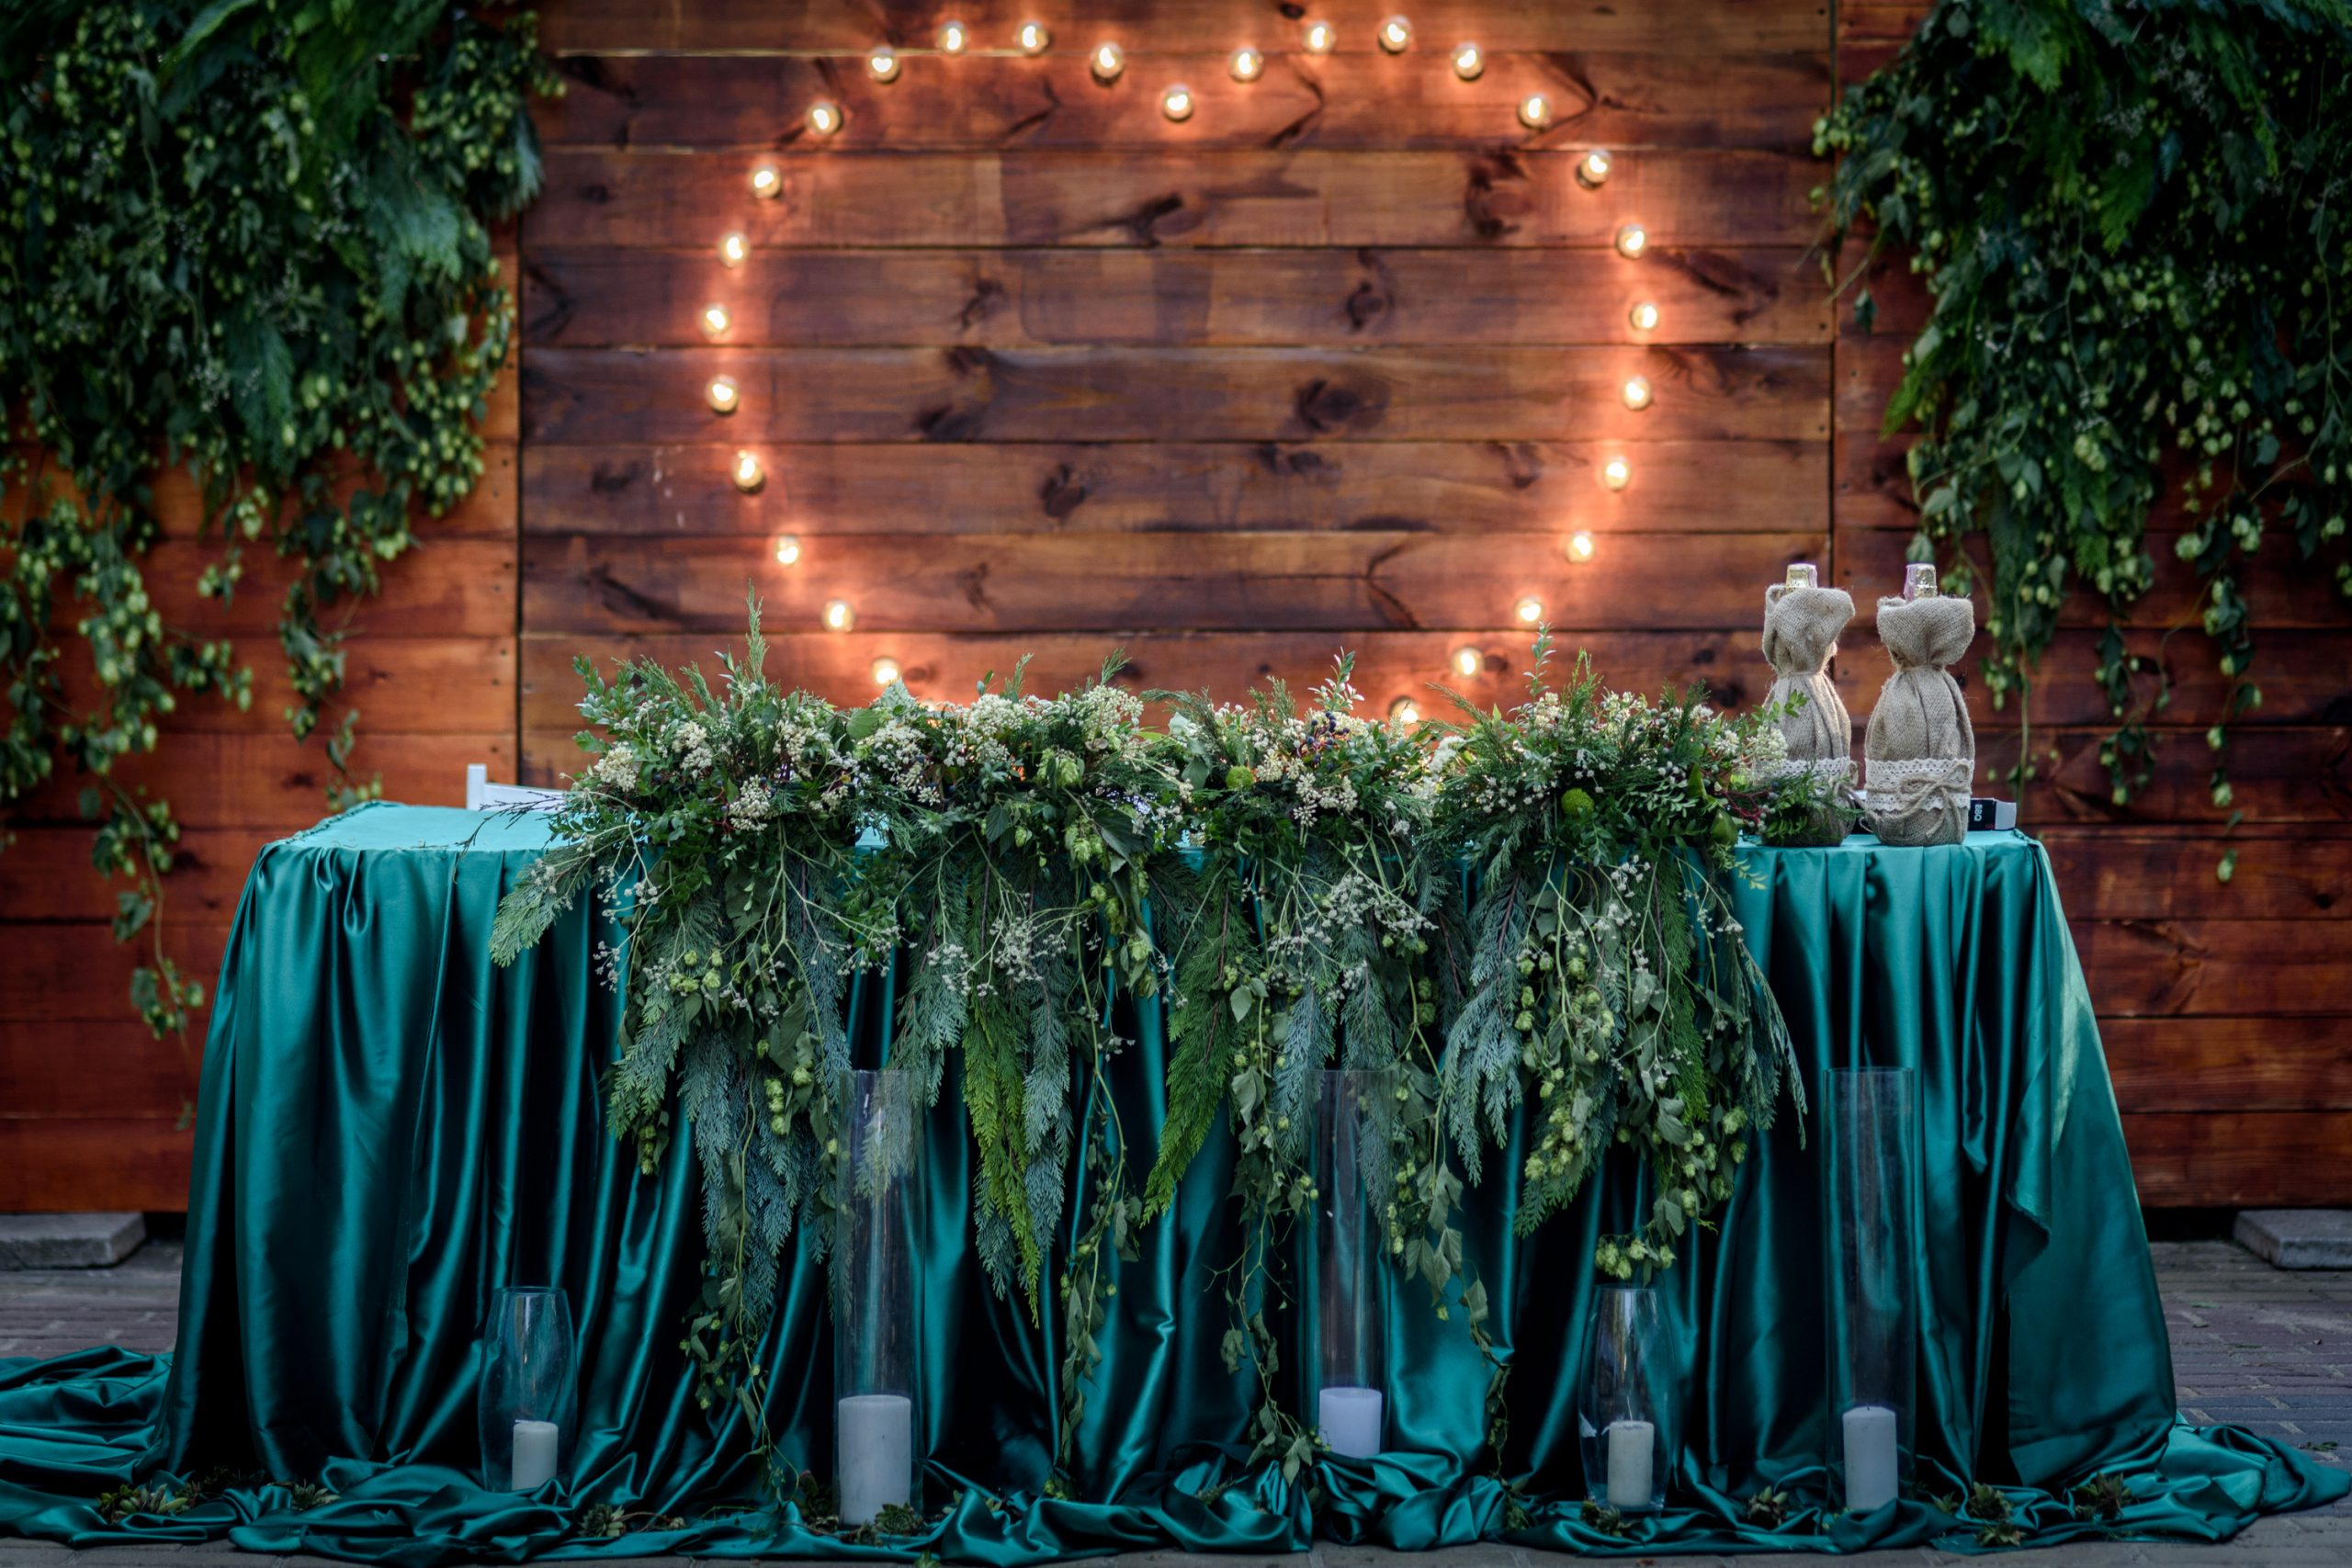 Emerald Green is one of my favorite colors for wedding color schemes because it is truly one of the most elegant colors out there.  And the best thing about it is that it looks positively gorgeous in almost any season or setting. See how you can incorporate beautiful greenery with the emerald green.